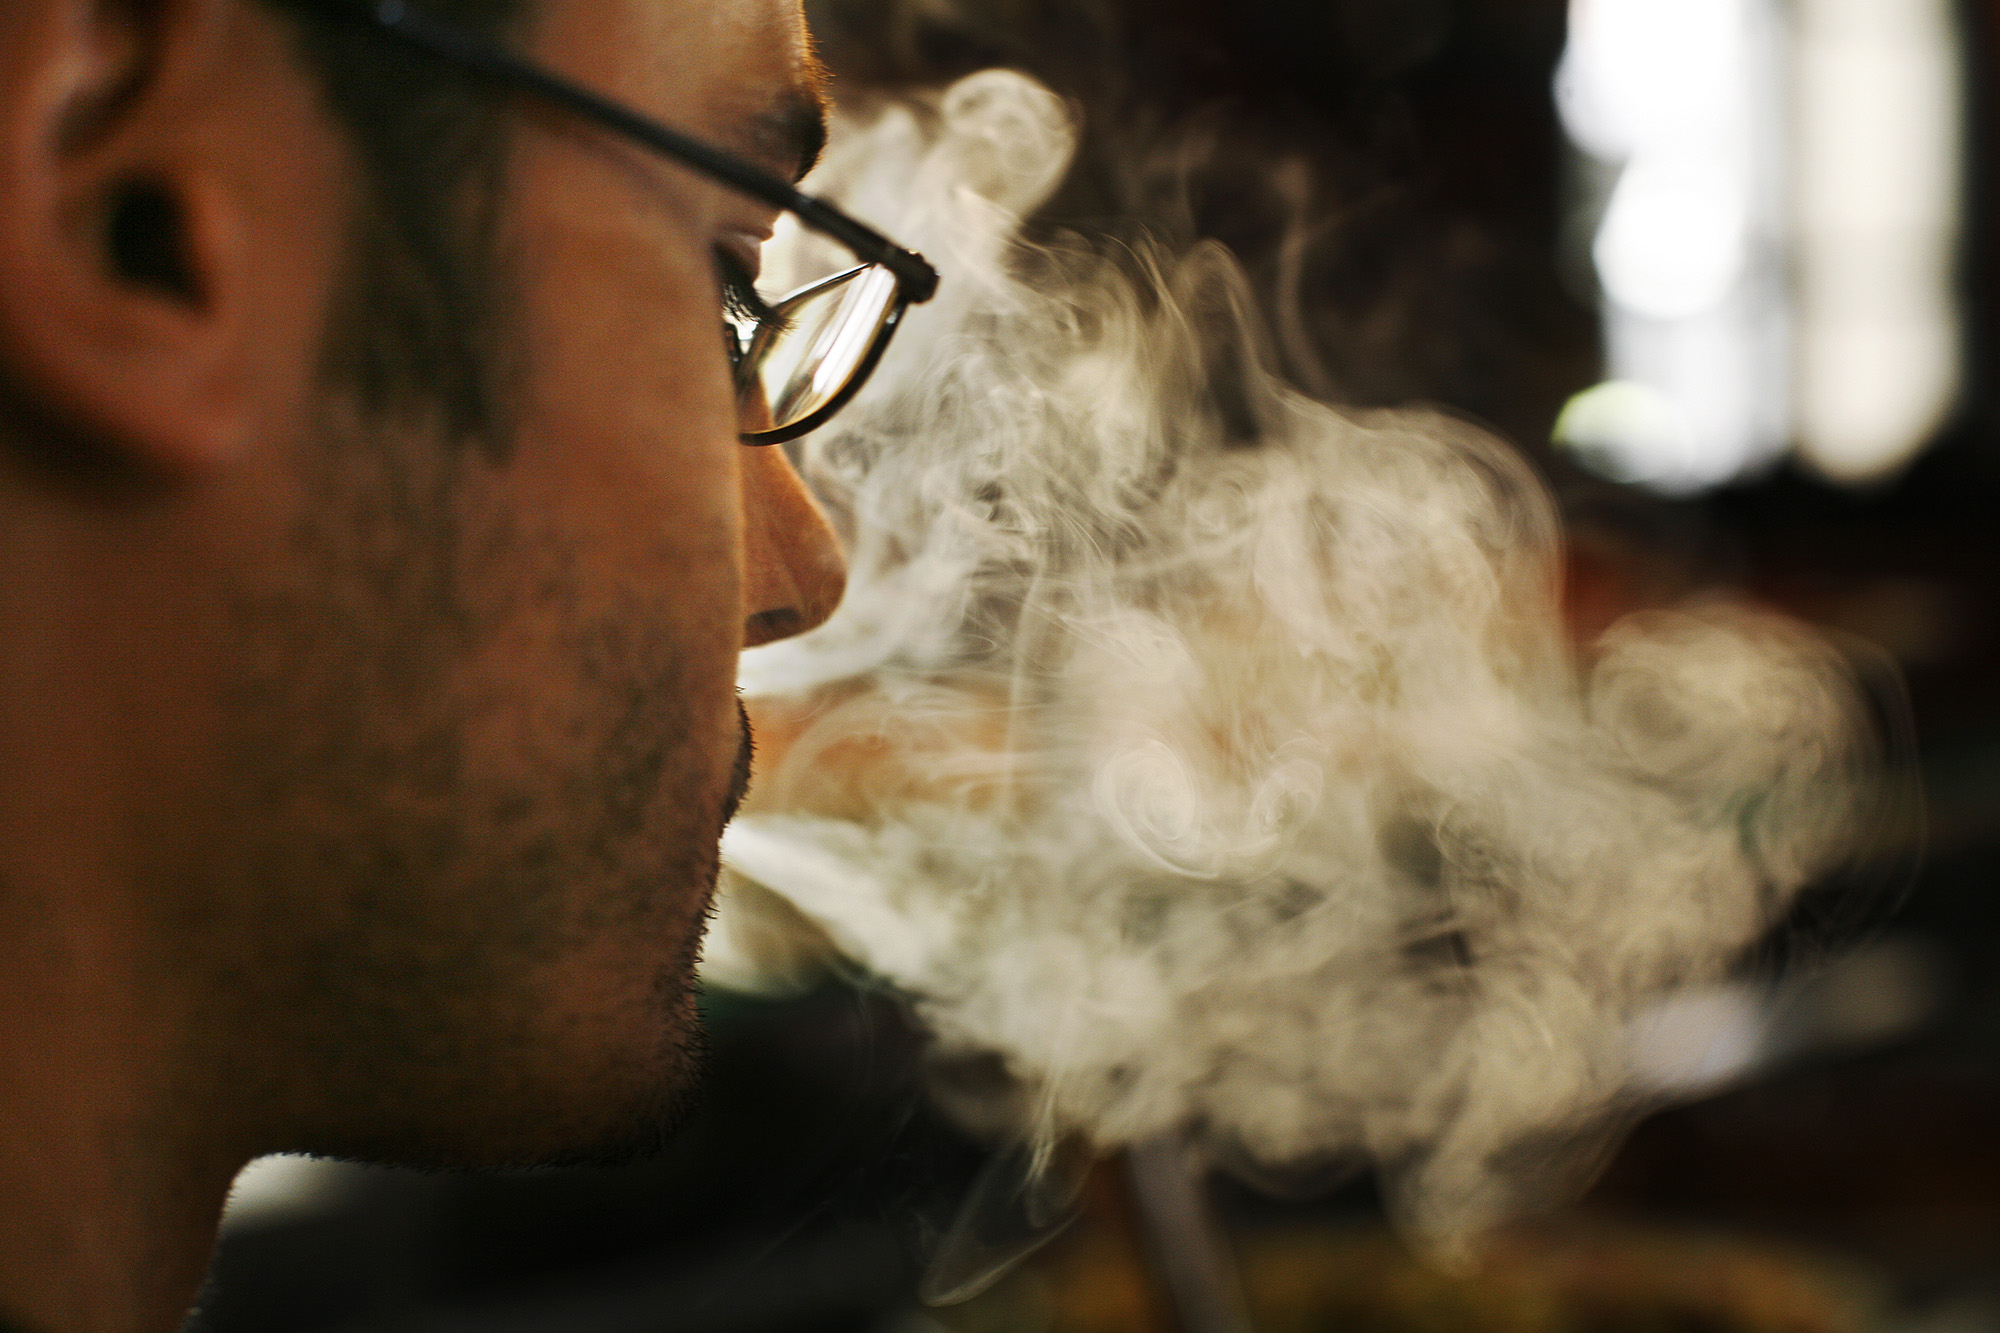 5 Percent of Workers Gave up Smoking when the Anti-Tobacco Law Took Effect